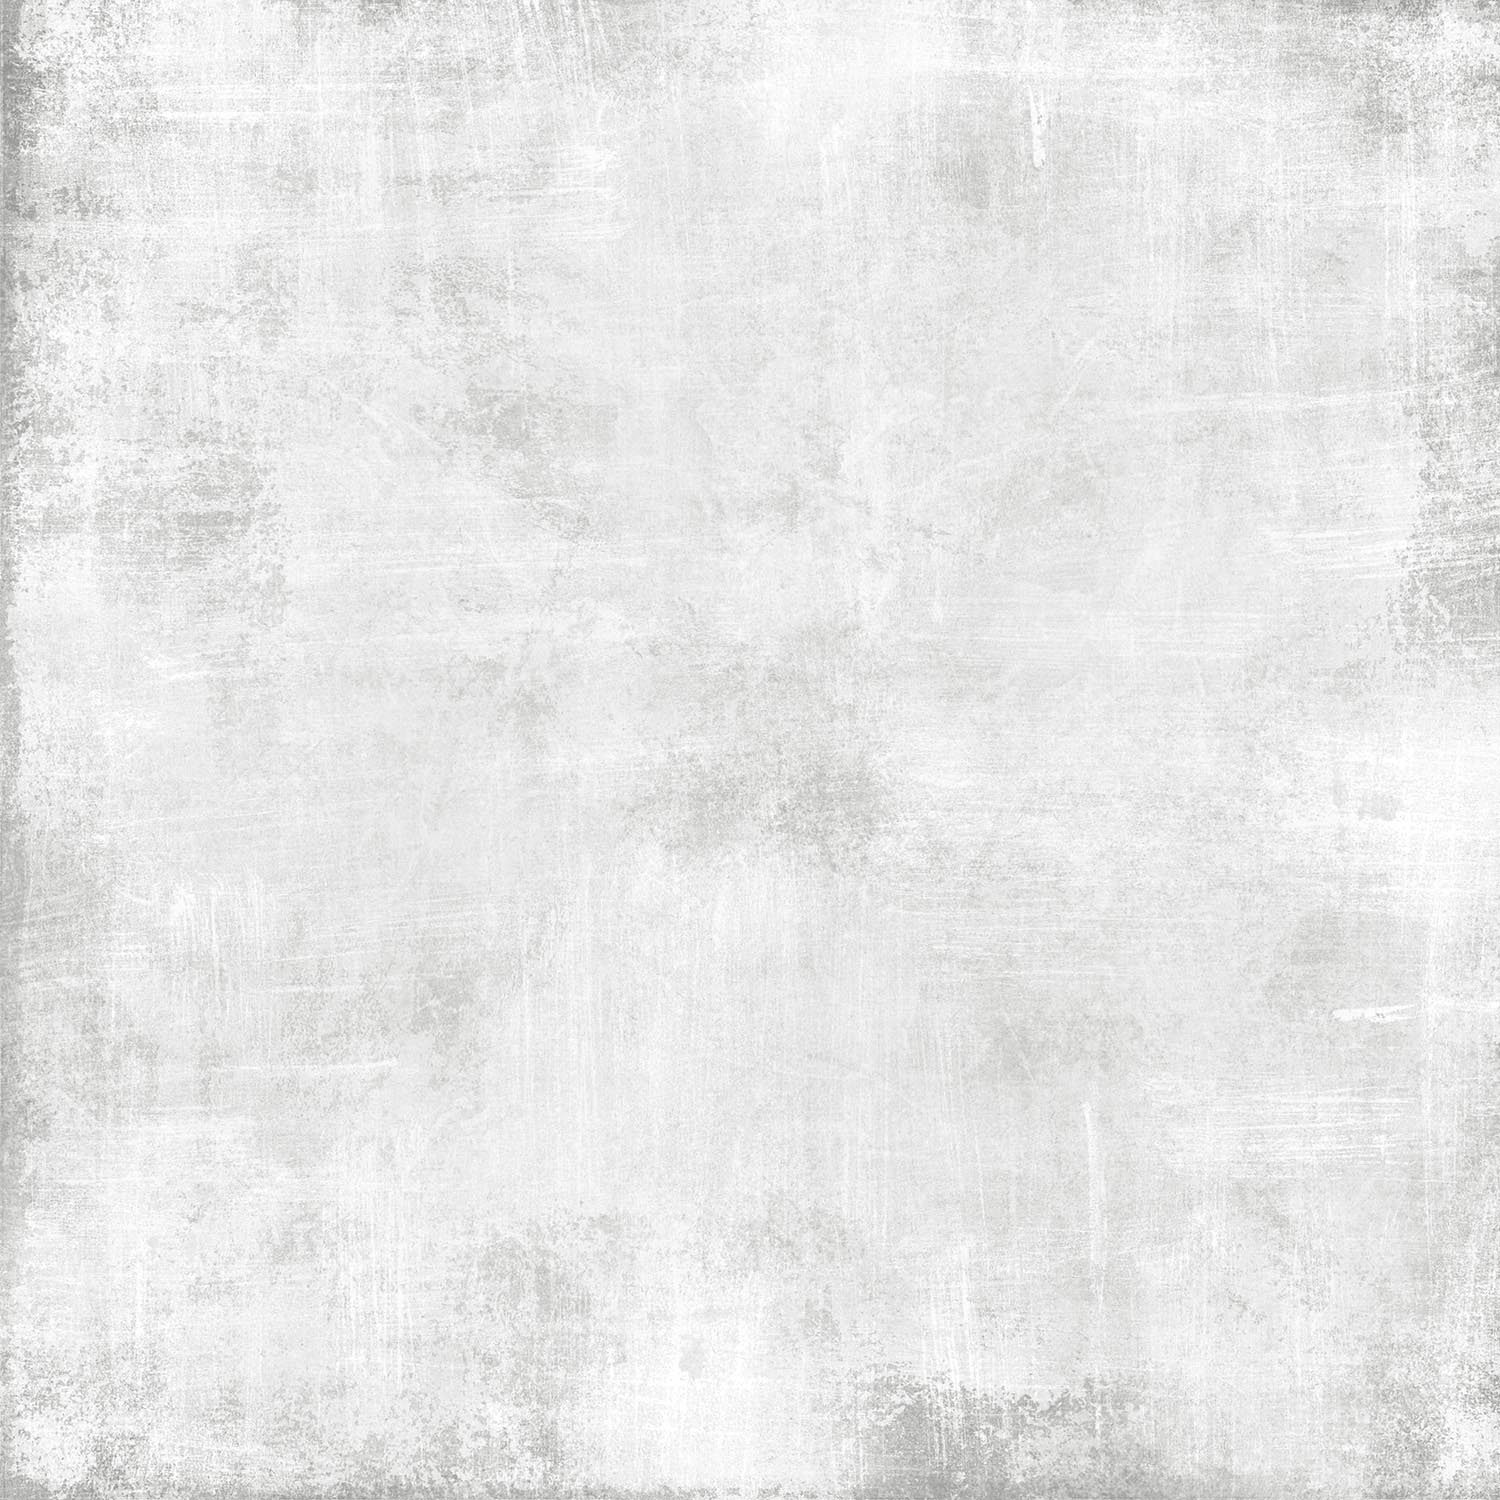 old white paper texture - abstract grunge background - latitude 64